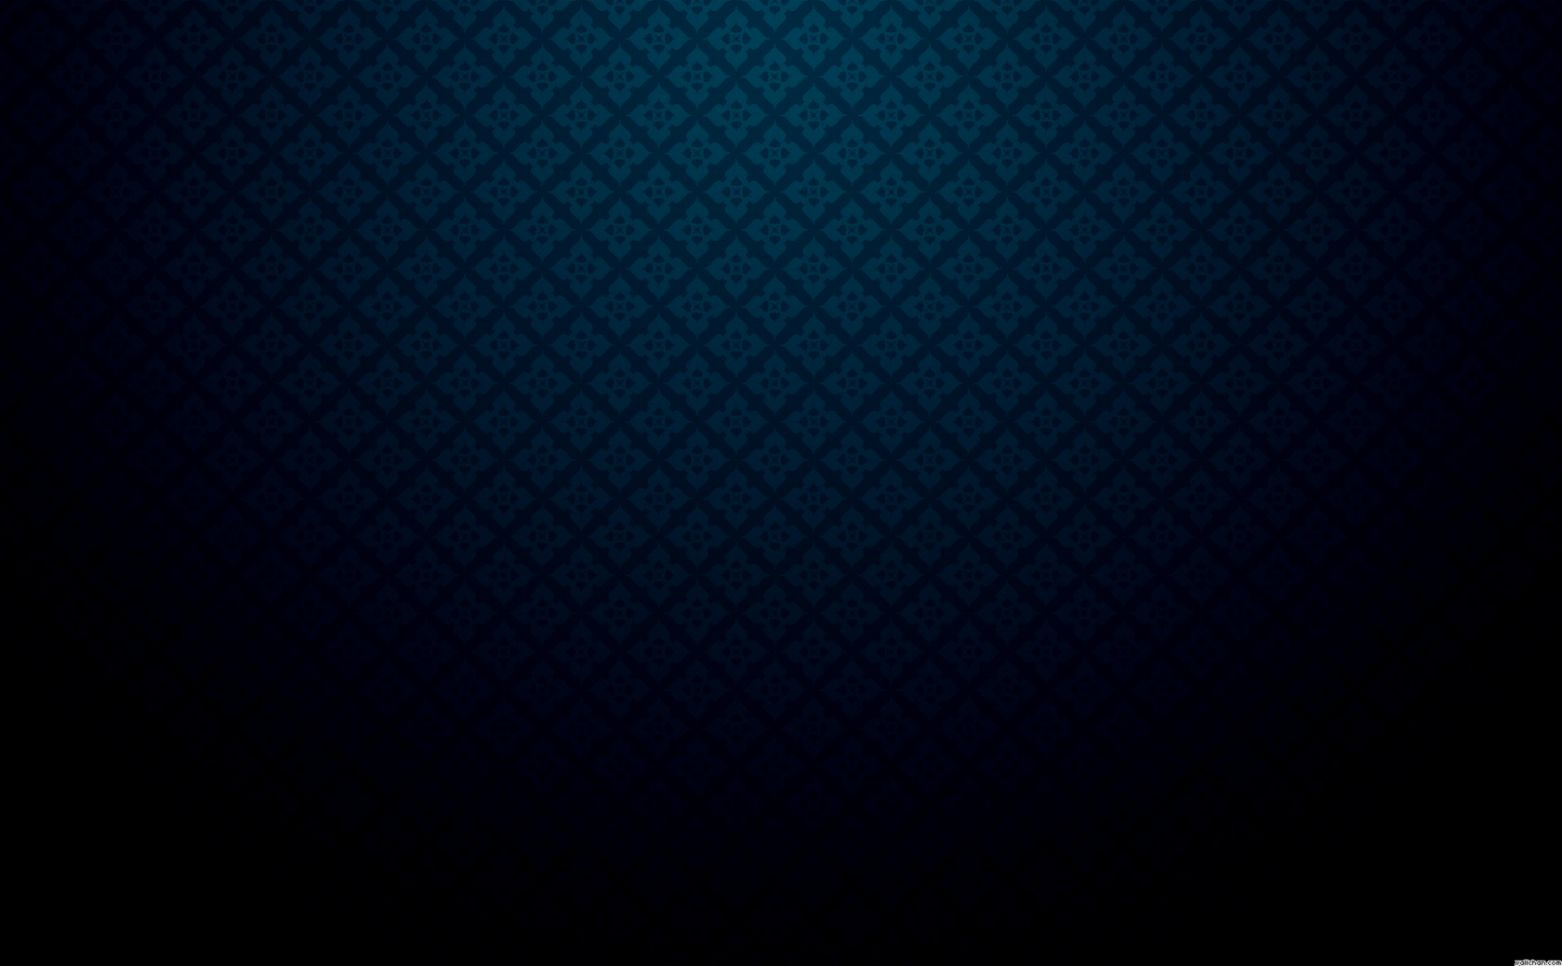 dark blue wallpaper